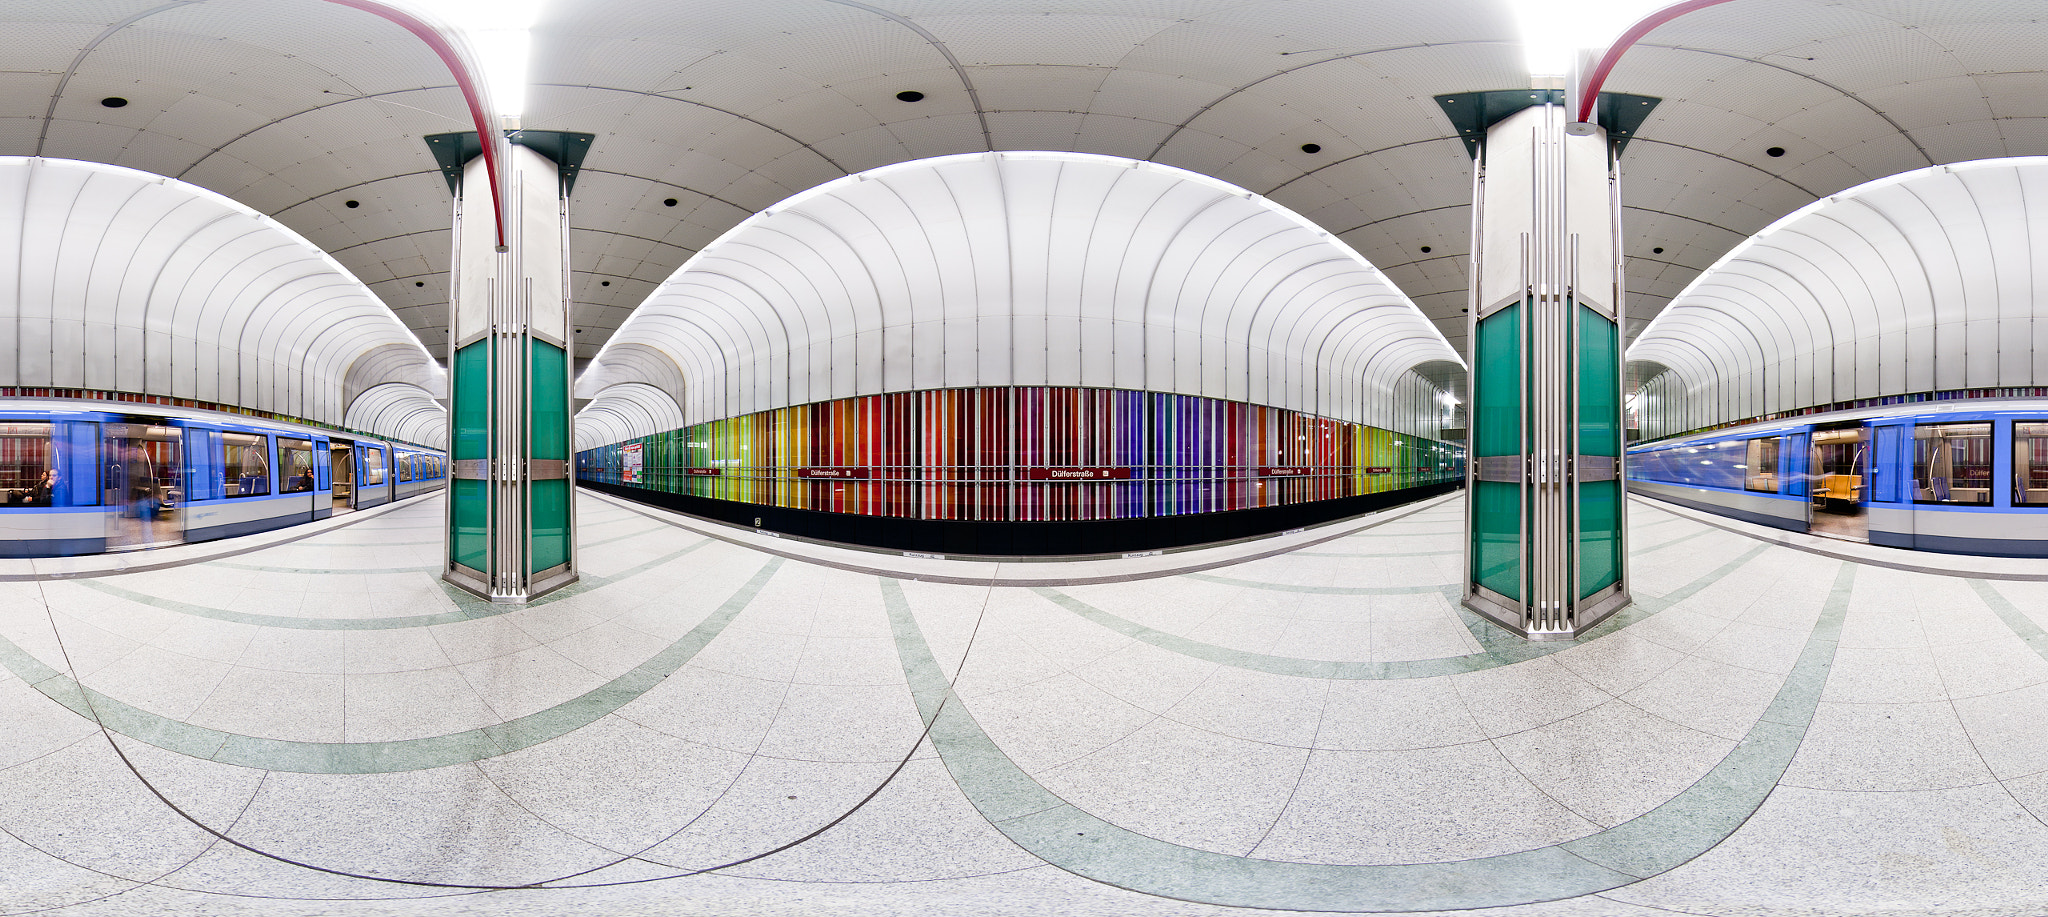 Photograph Dülfer 360° with train by Marco Opitz on 500px